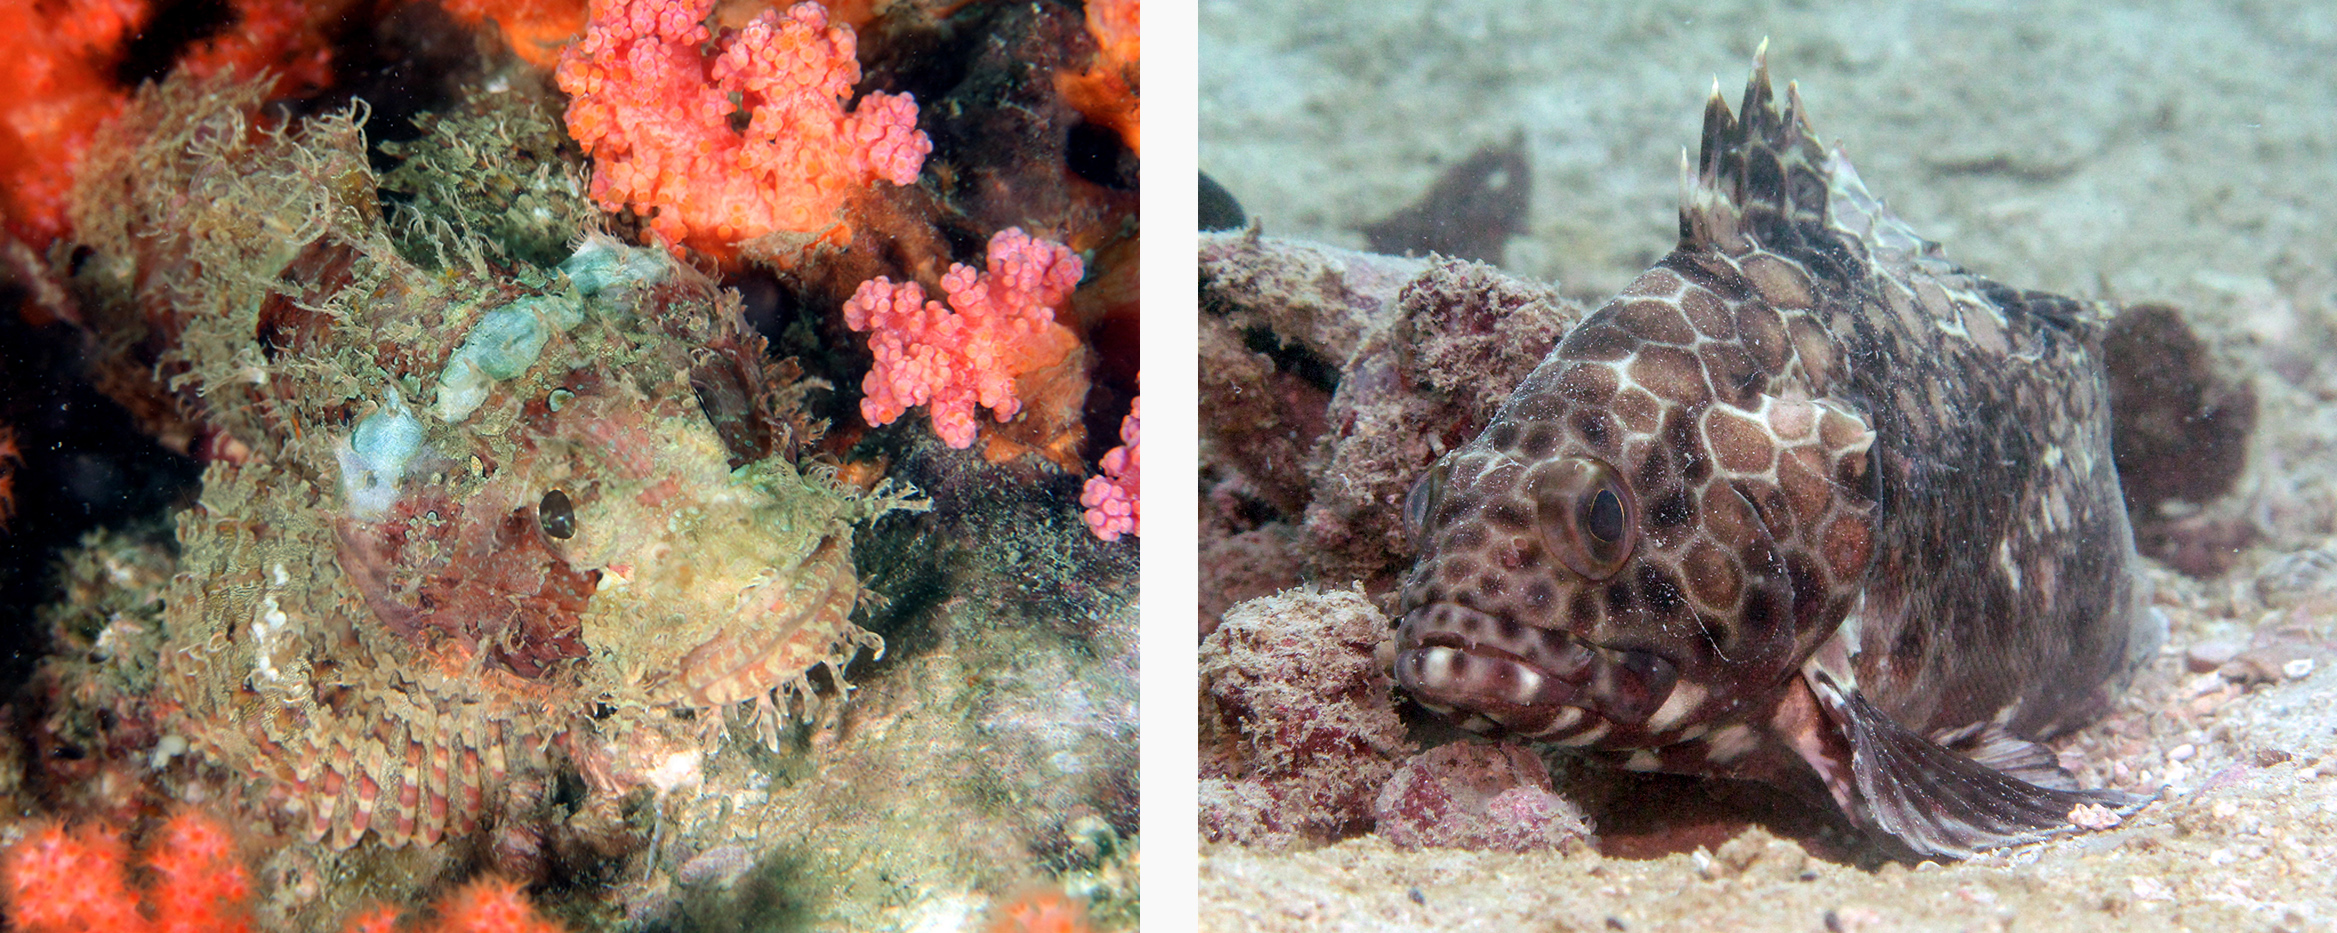 Left: False kelpfish. Right: Longfin grouper